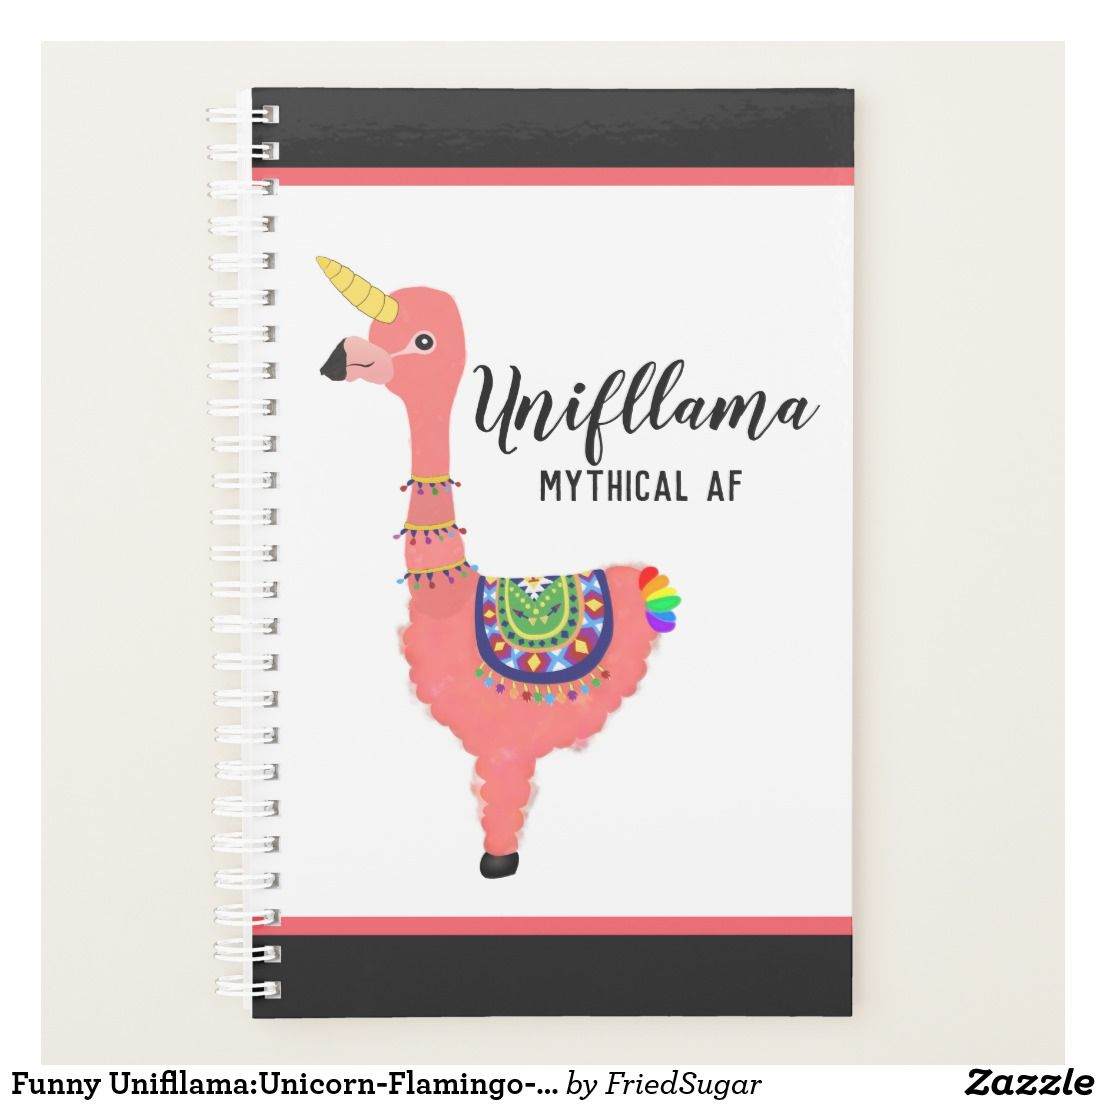 Funny Unifllama Unicorn Flamingo Llama Mythical Af Planner